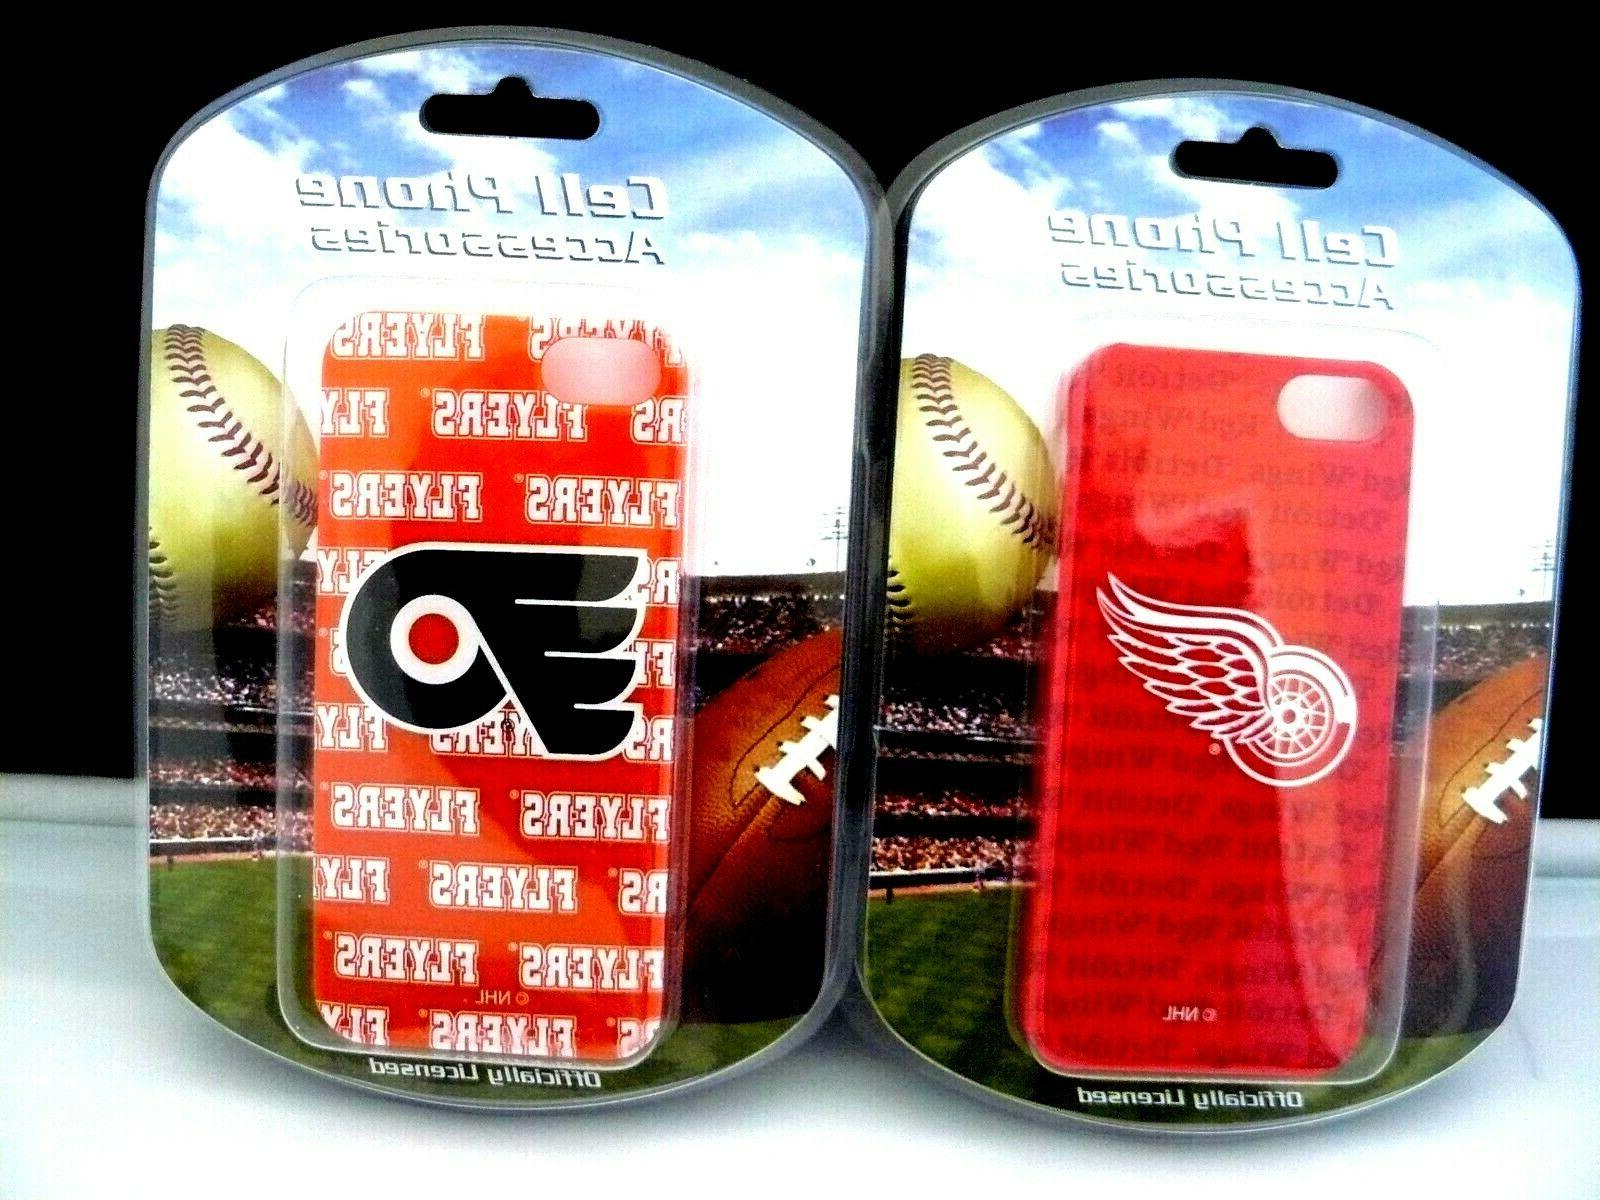 nhl licensed phone cases for iphone 5